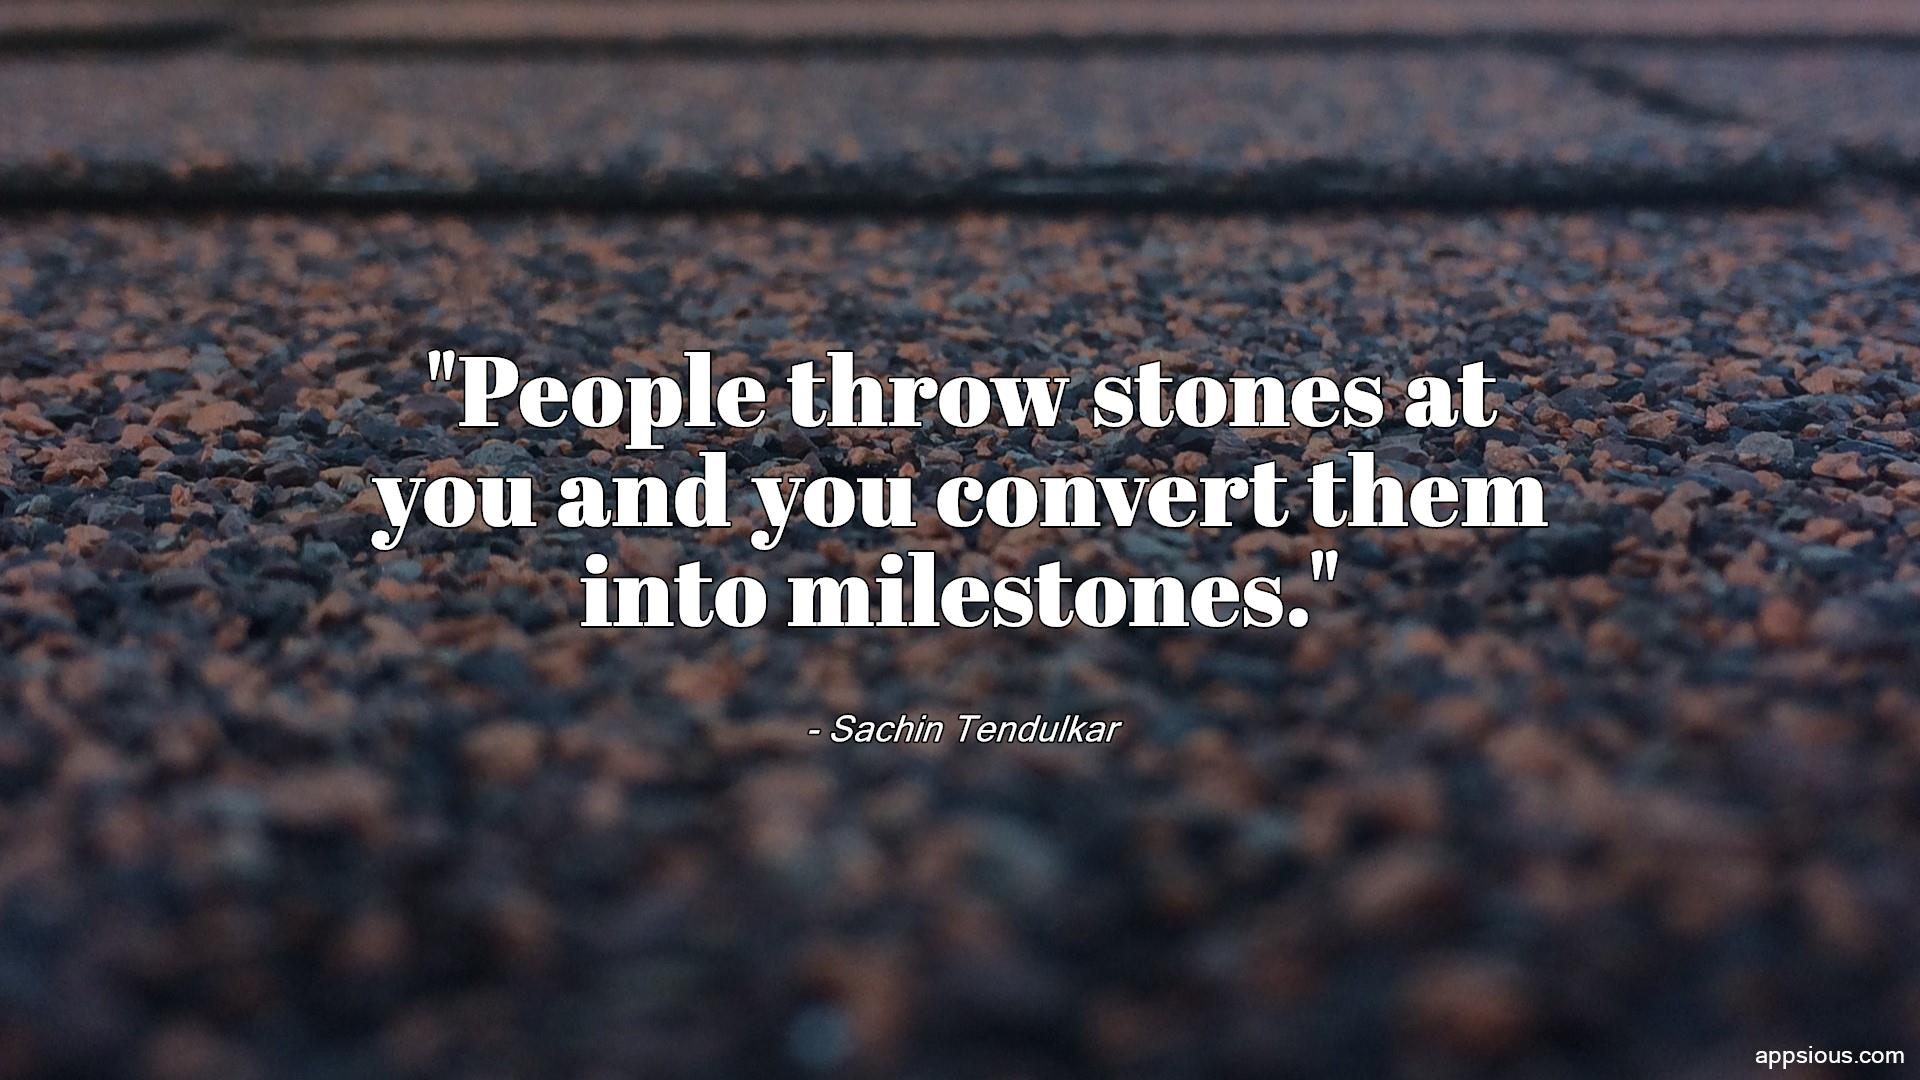 People throw stones at you and you convert them into milestones.